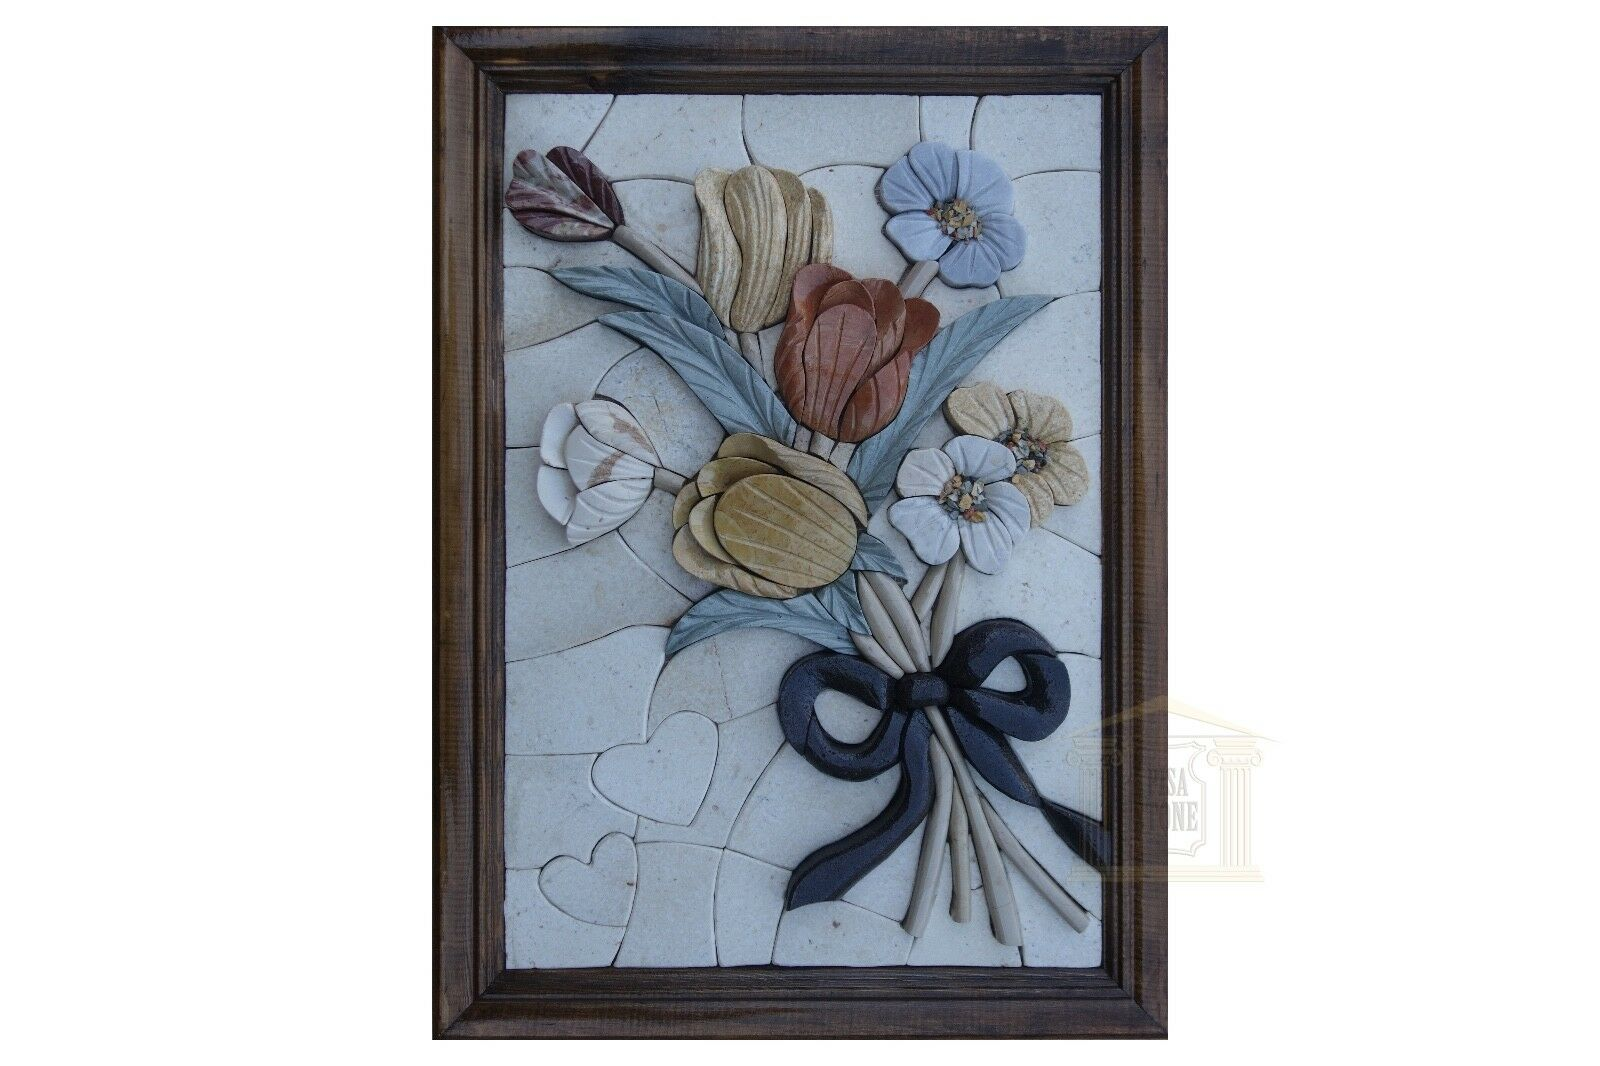 Right Ribbon of Flowers 3D Handmade Stone Picture Innocent Wall Decor Mosaic Art